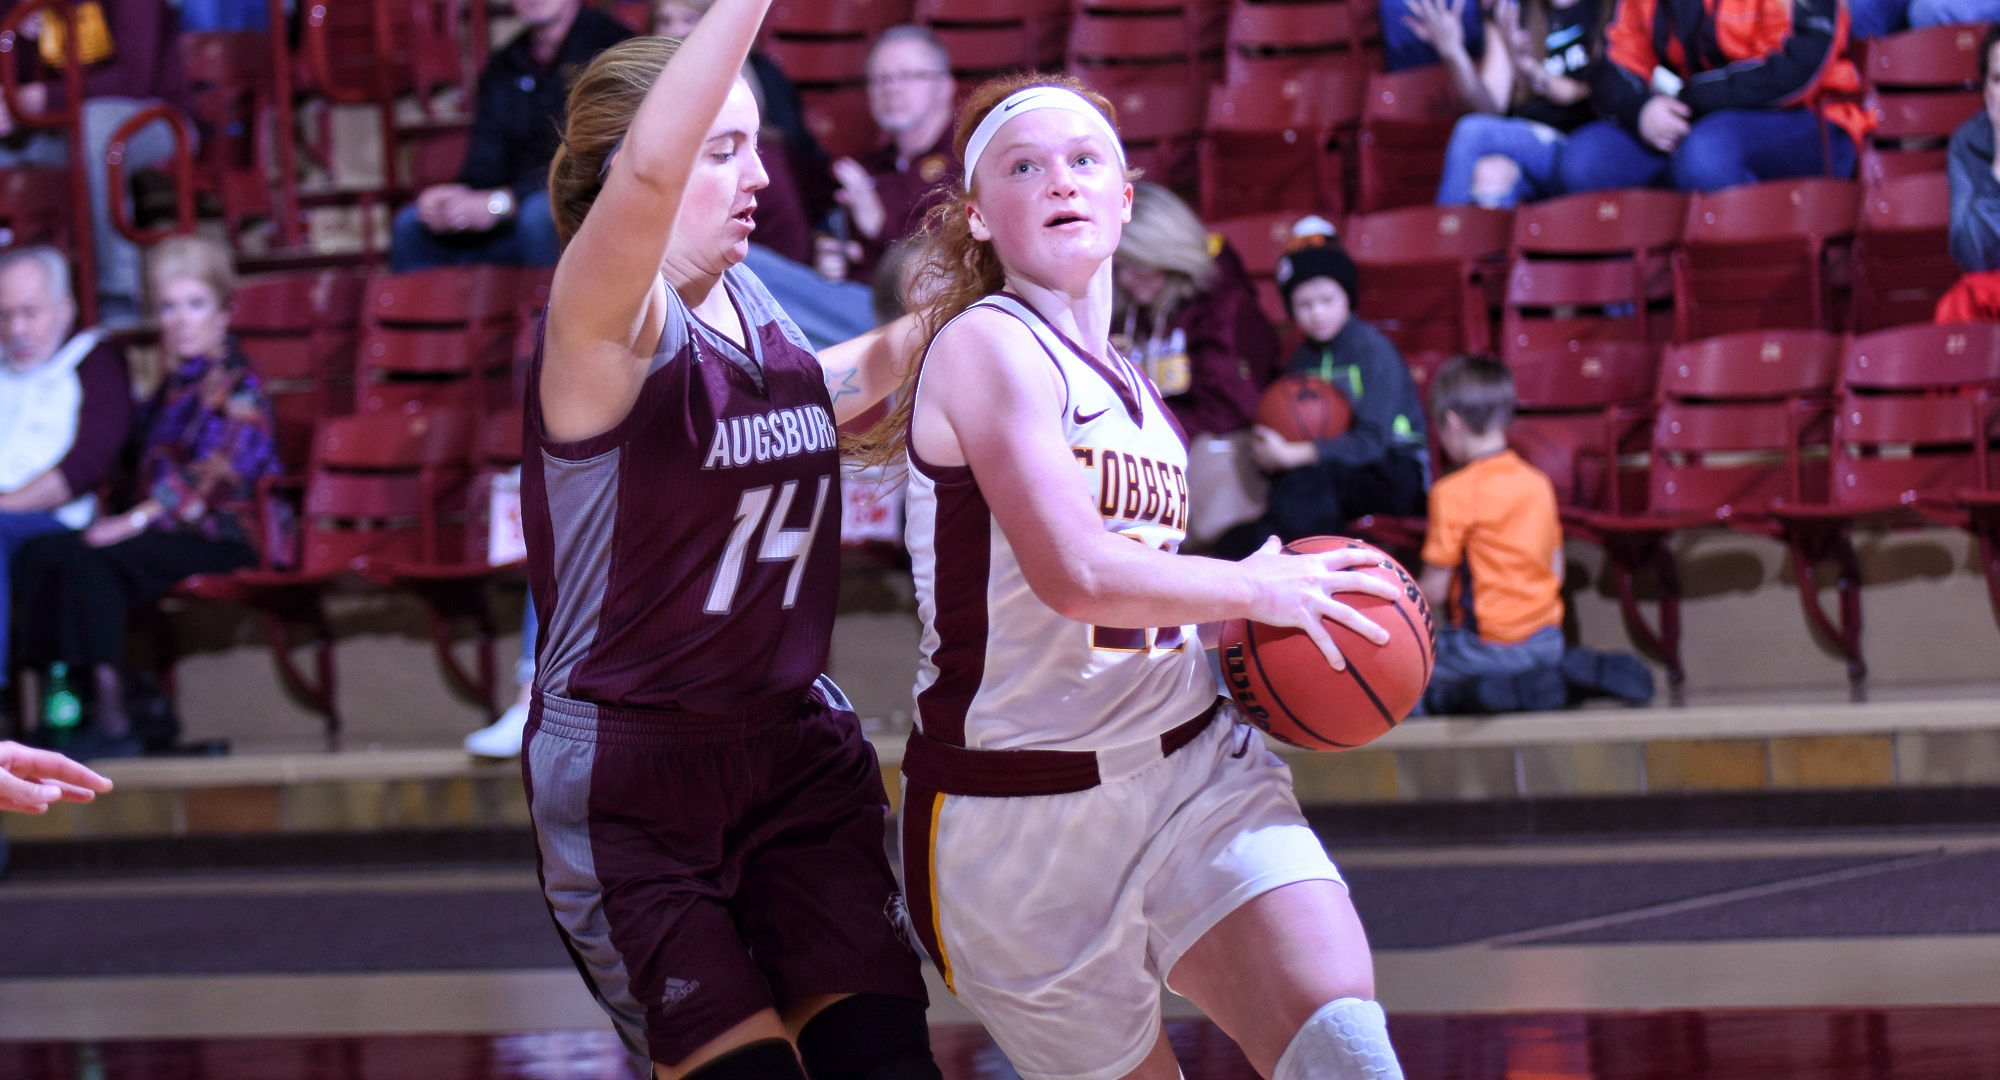 Junior guard Rachel Hoernemann drives to the basket in the first half of the Cobbers' MIAC opener against Augsburg. She had a team-high four assists.